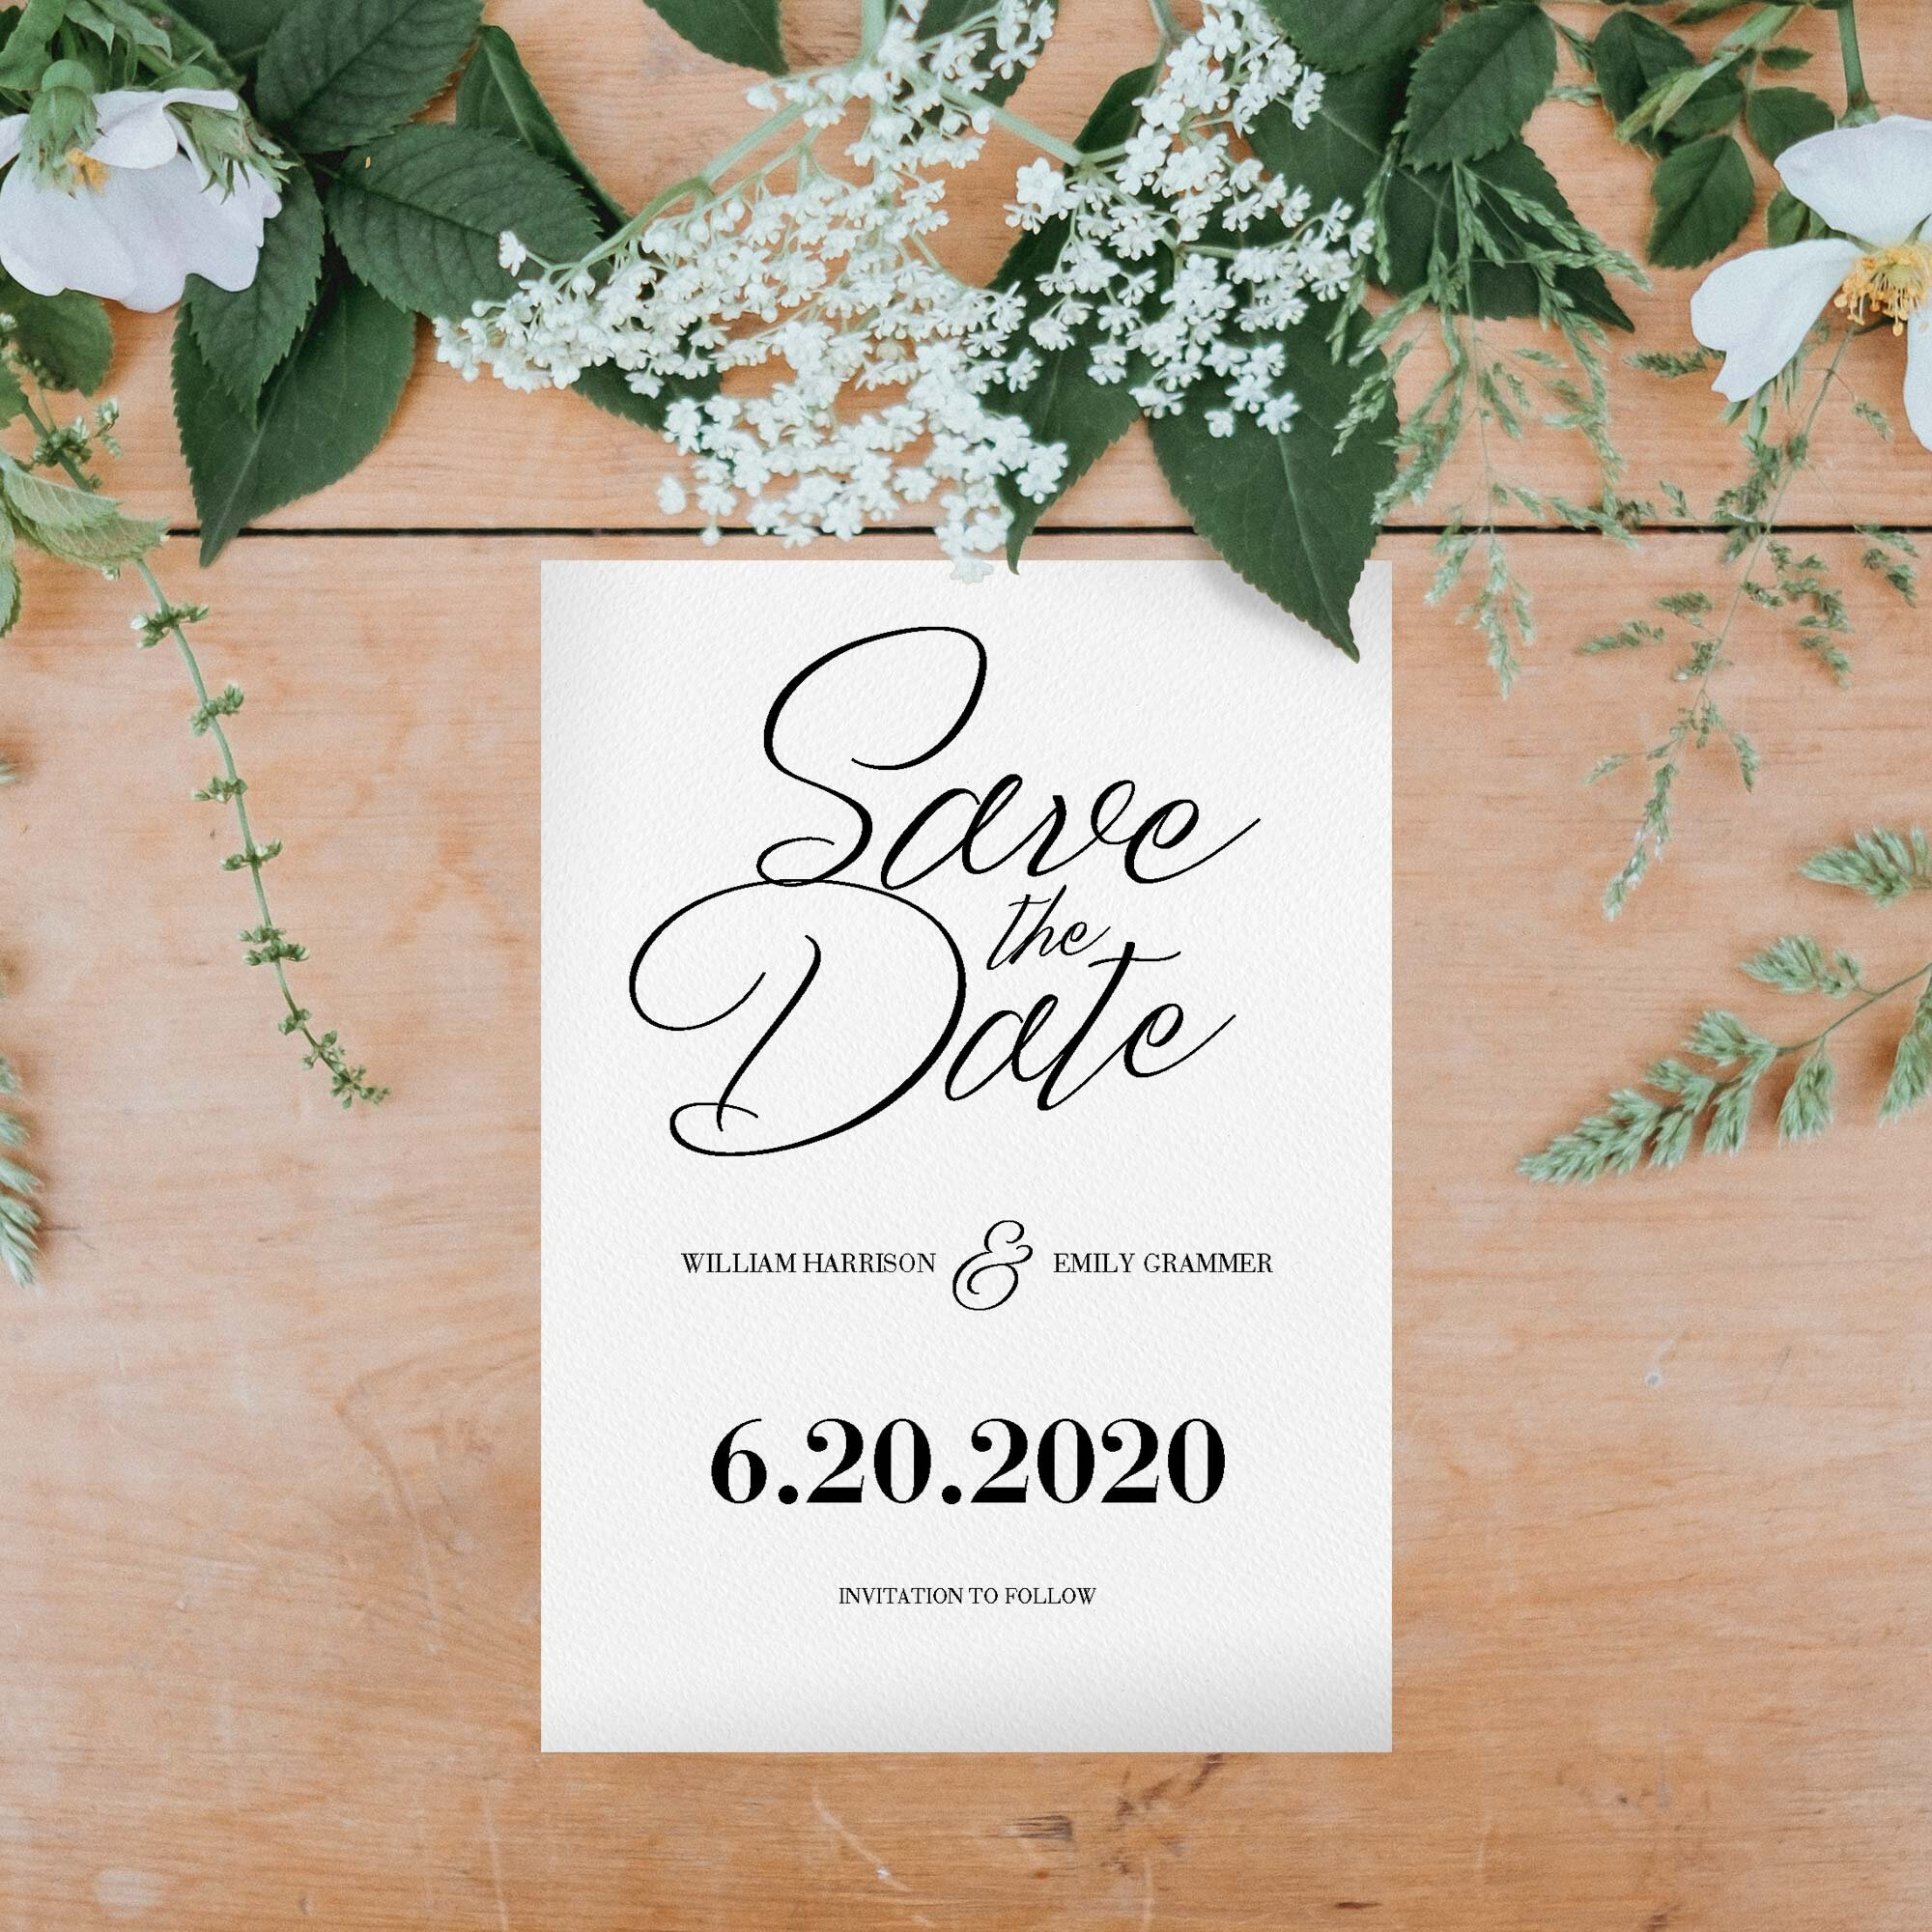 Minimalist Save the Date Card for envelopes or make into a postcard to send to prospective guests so they can keep your important wedding event saved in their calendar